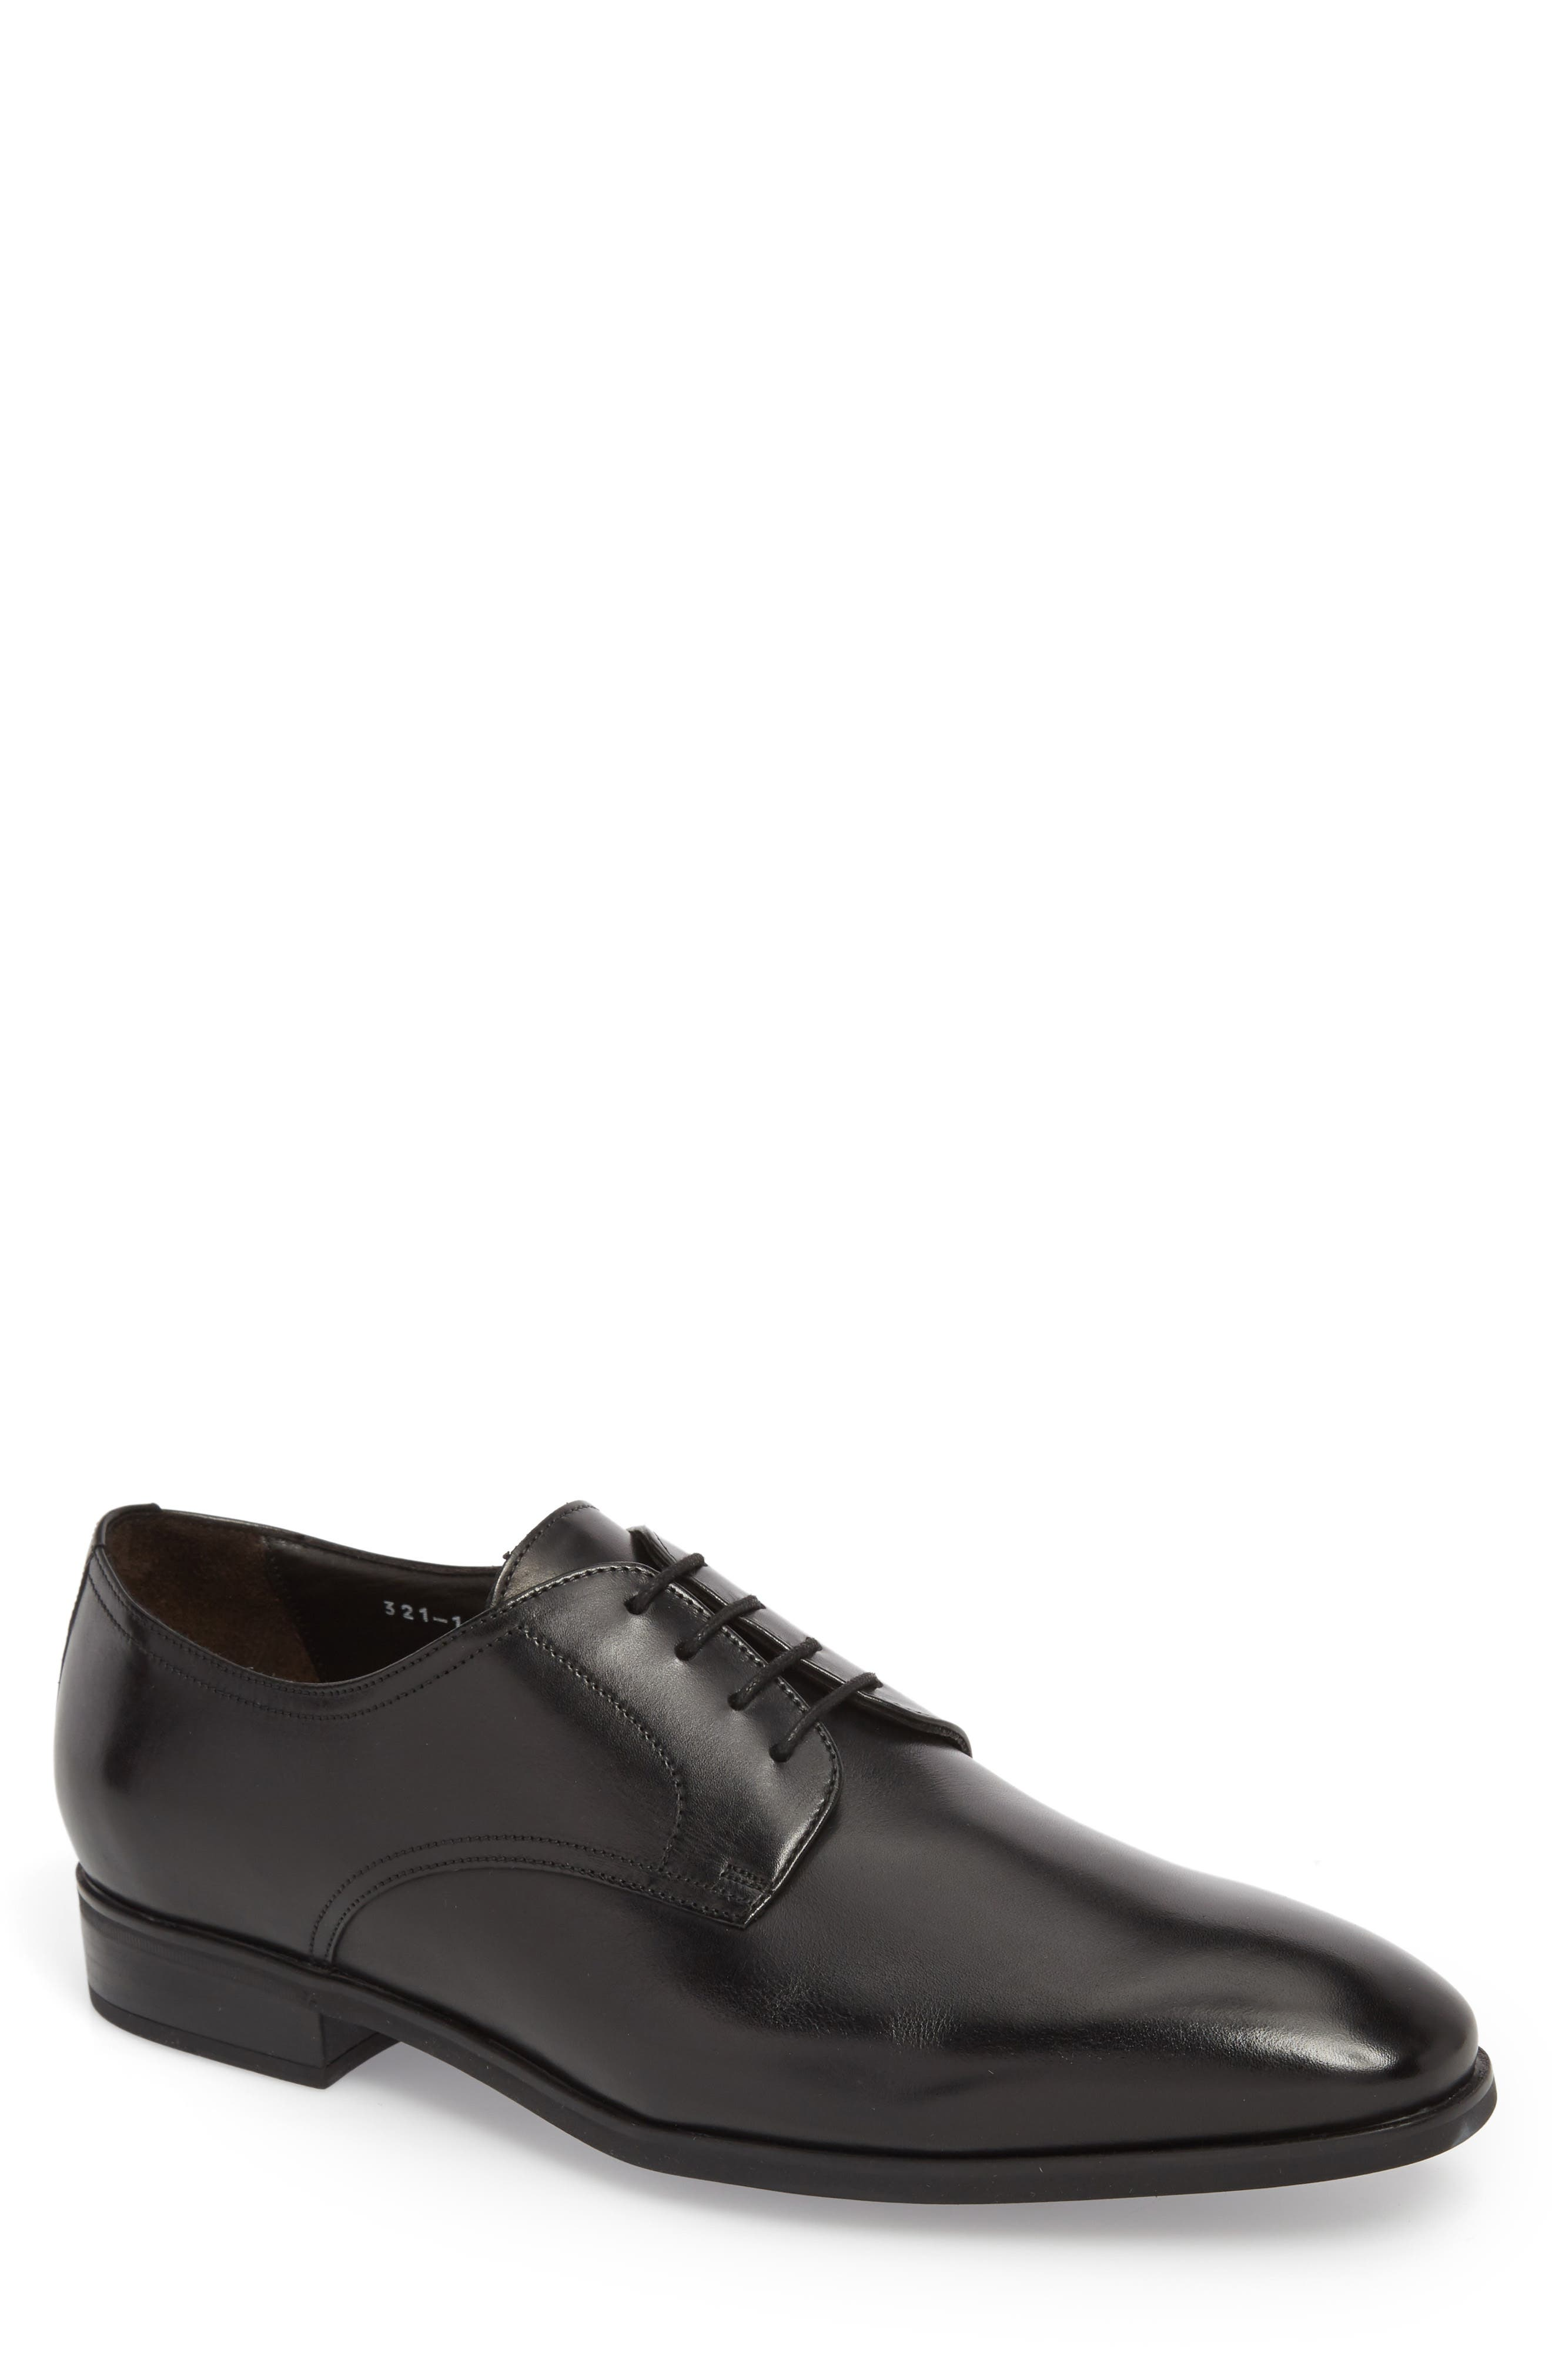 TO BOOT NEW YORK, Dwight Plain Toe Derby, Main thumbnail 1, color, BLACK LEATHER